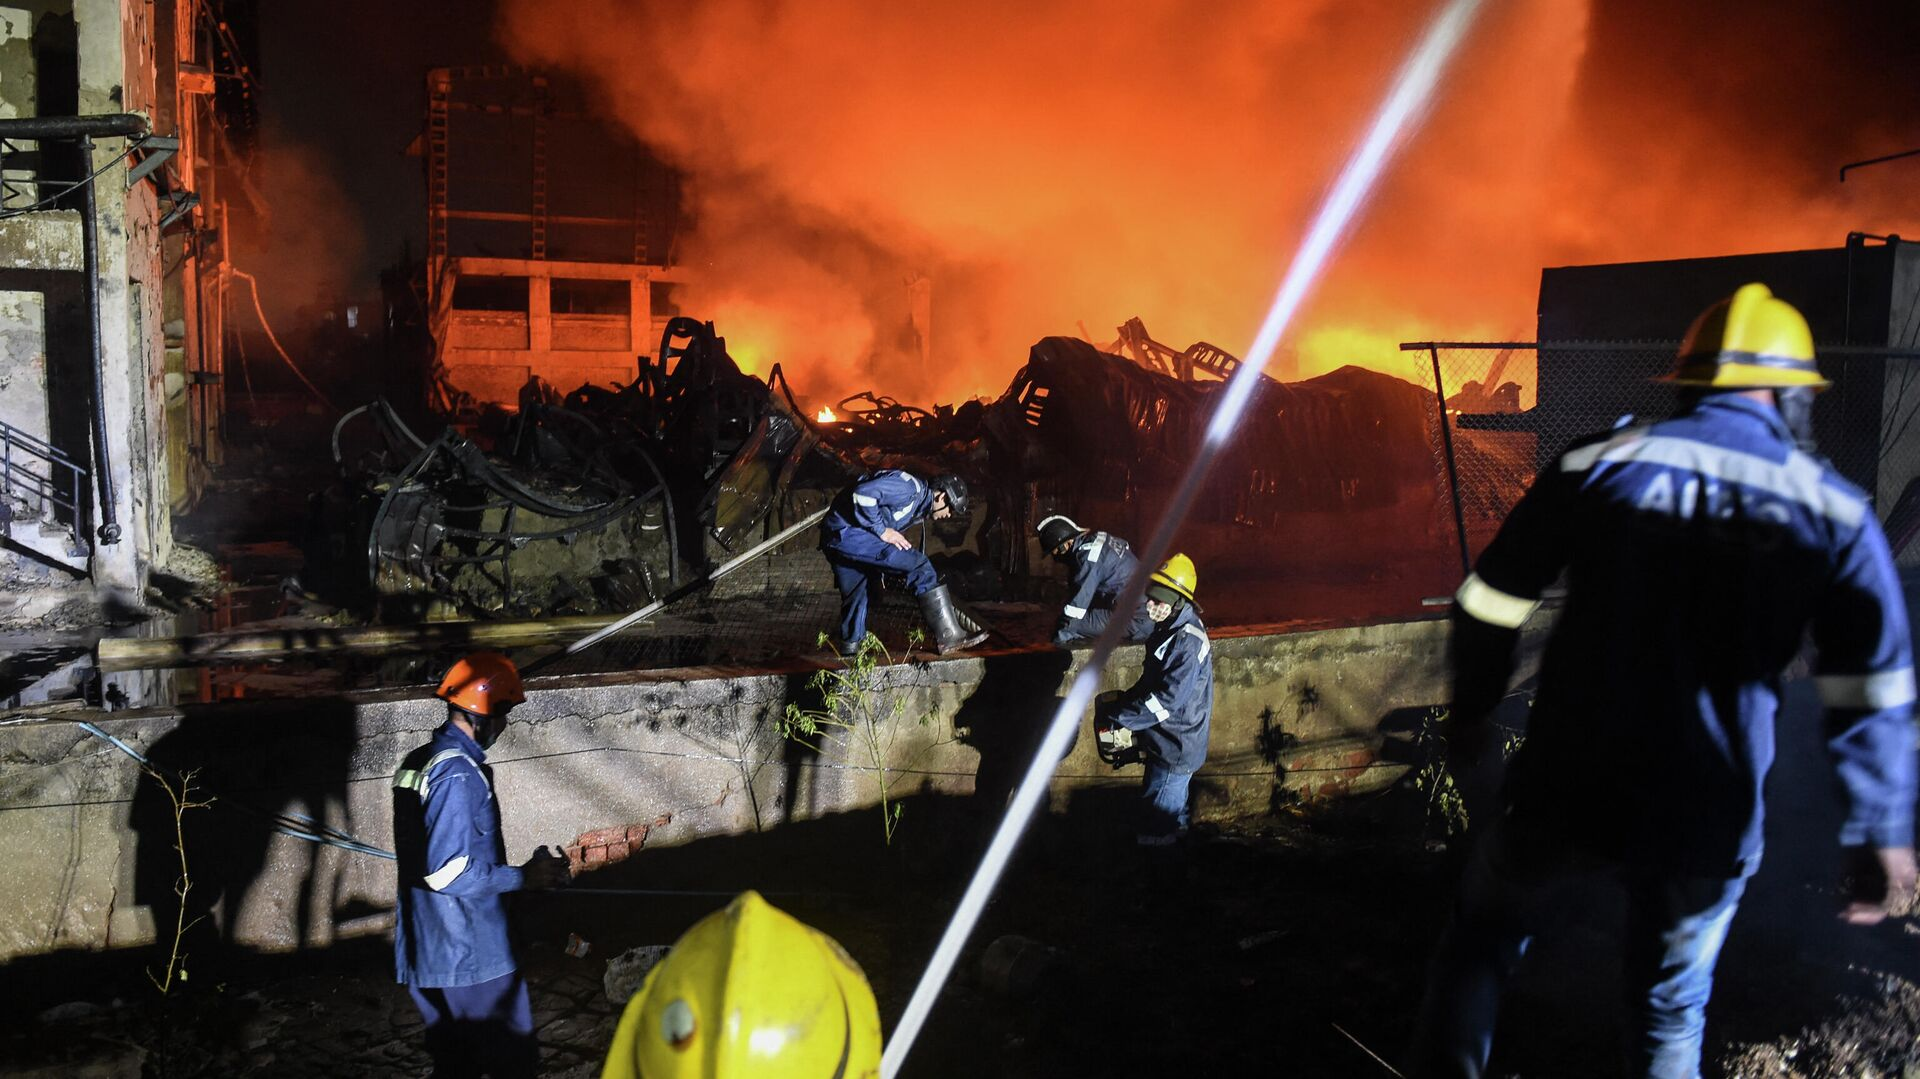 Ahmedabad Fire and Emergency Services personnel work to extinguish a fire in a chemical factory at Vatva GIDC near Ahmedabad on December 9, 2020. (Photo by SAM PANTHAKY / AFP) - Sputnik Ελλάδα, 1920, 07.06.2021